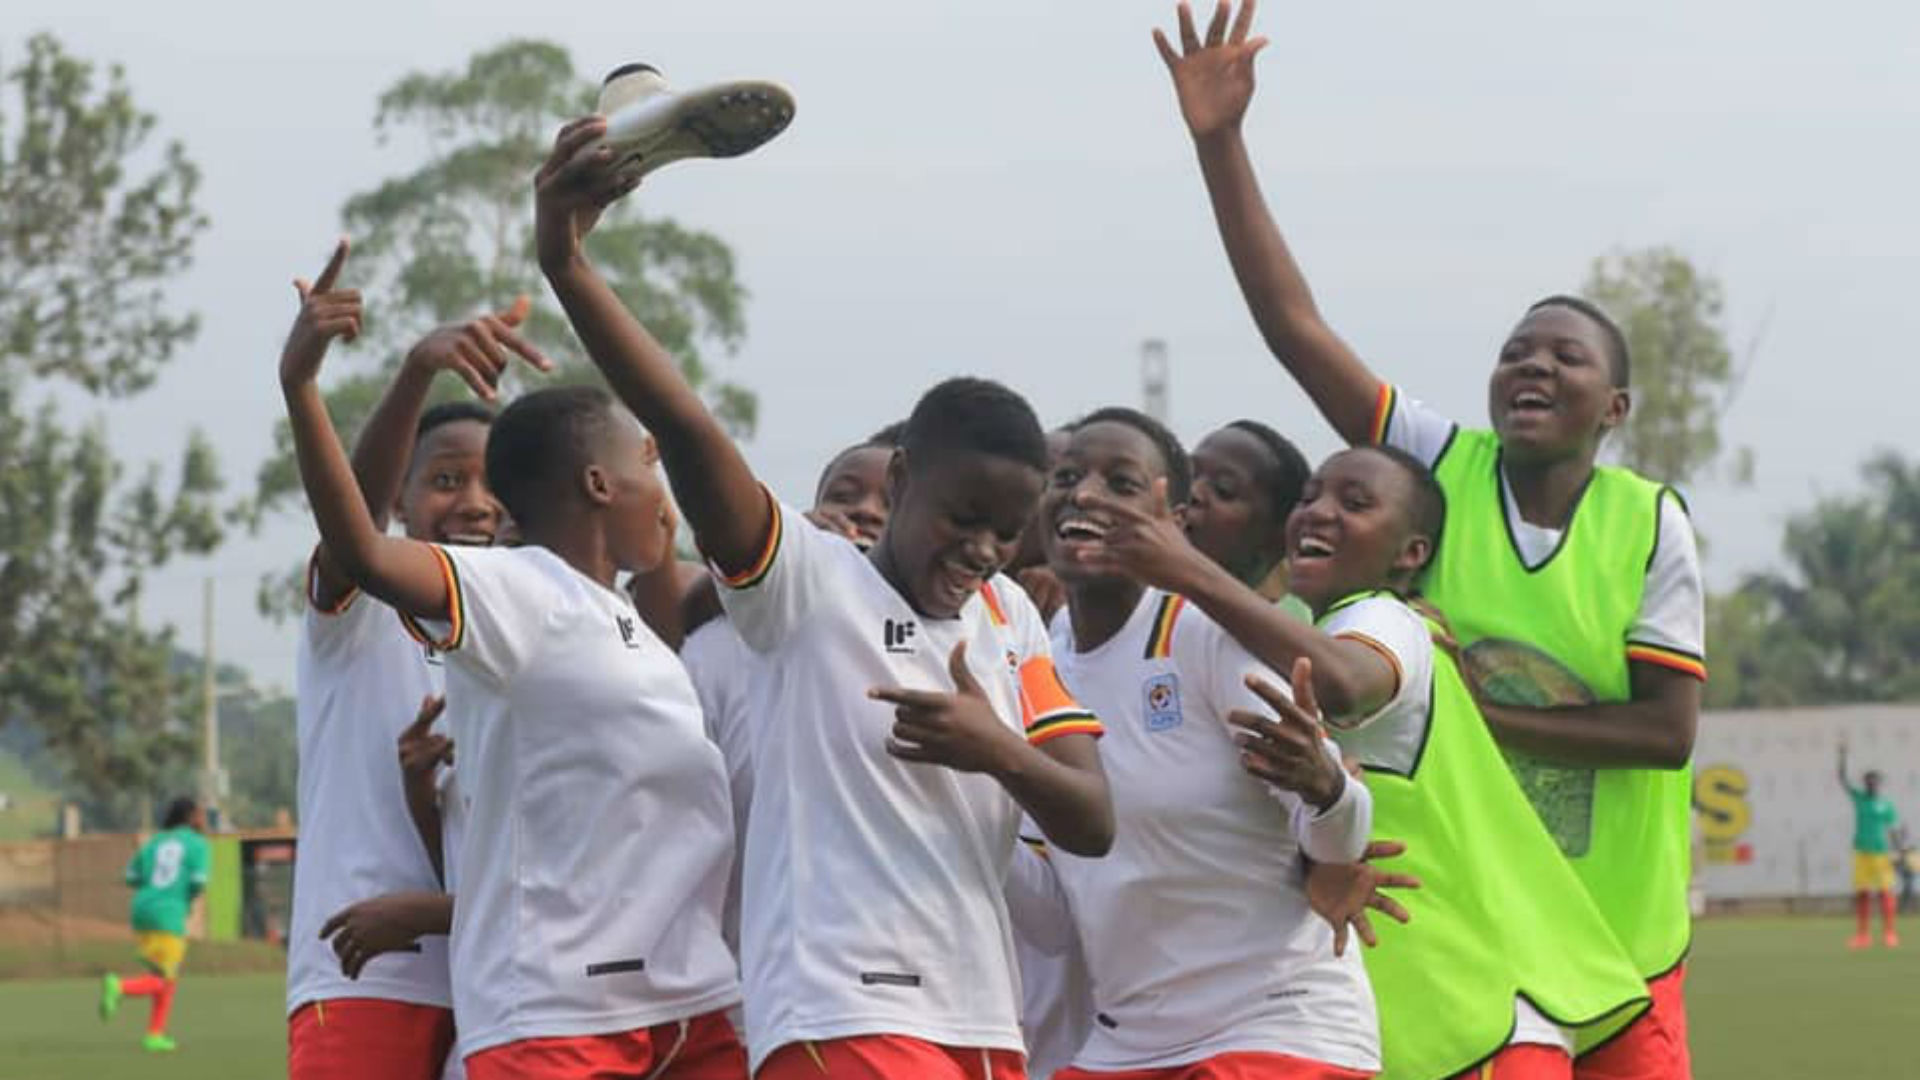 Six new faces as Uganda U17 women's team for Cameroon tie is named